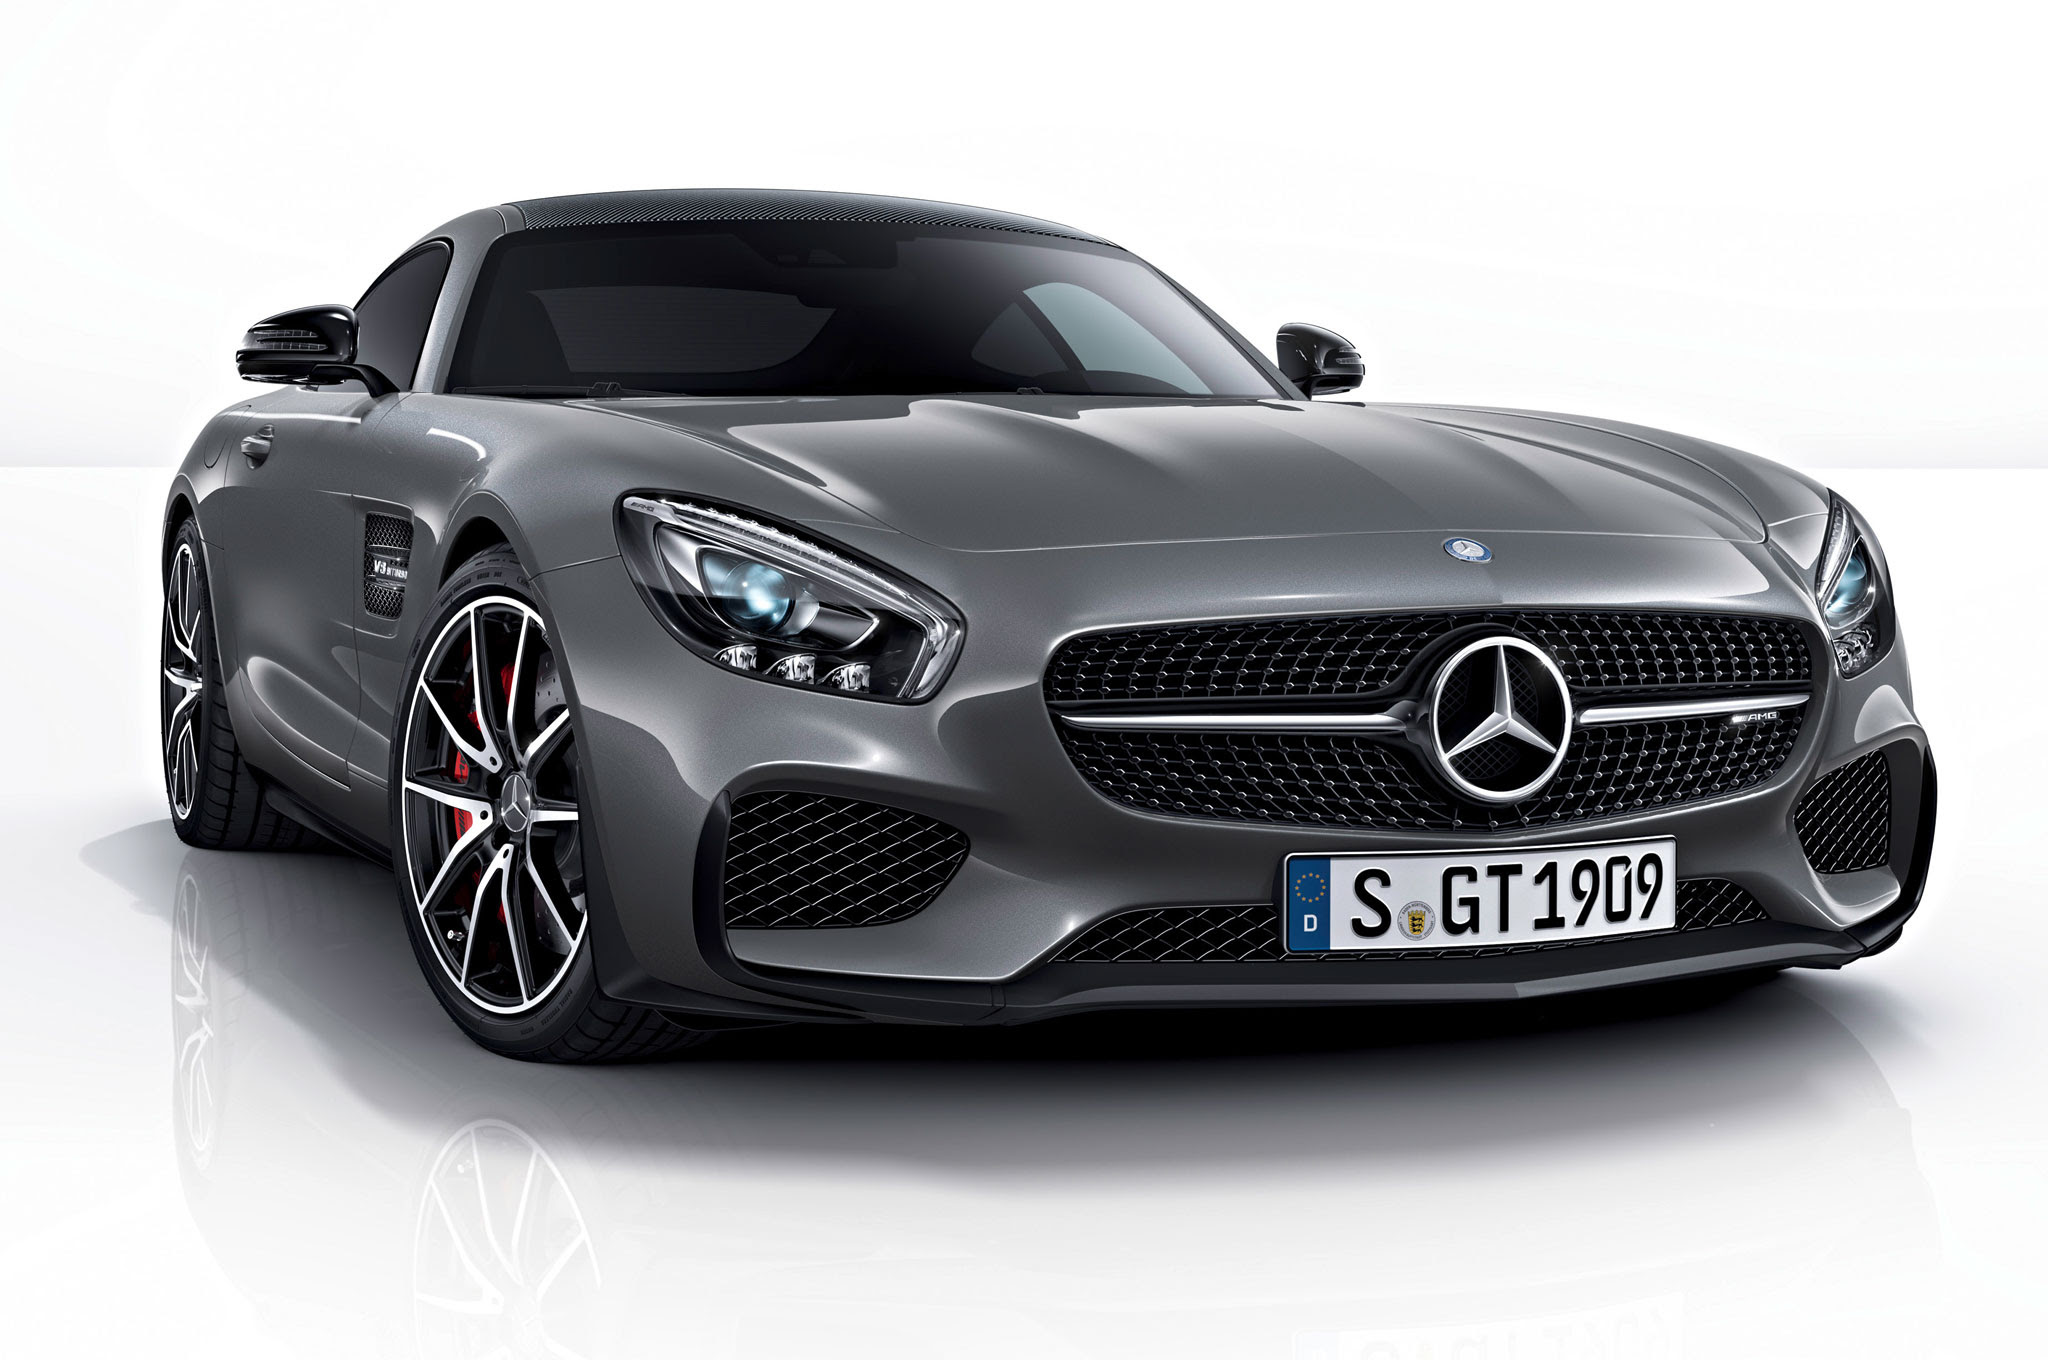 2016 Mercedes-AMG GT Kicks Off with Edition 1 Model